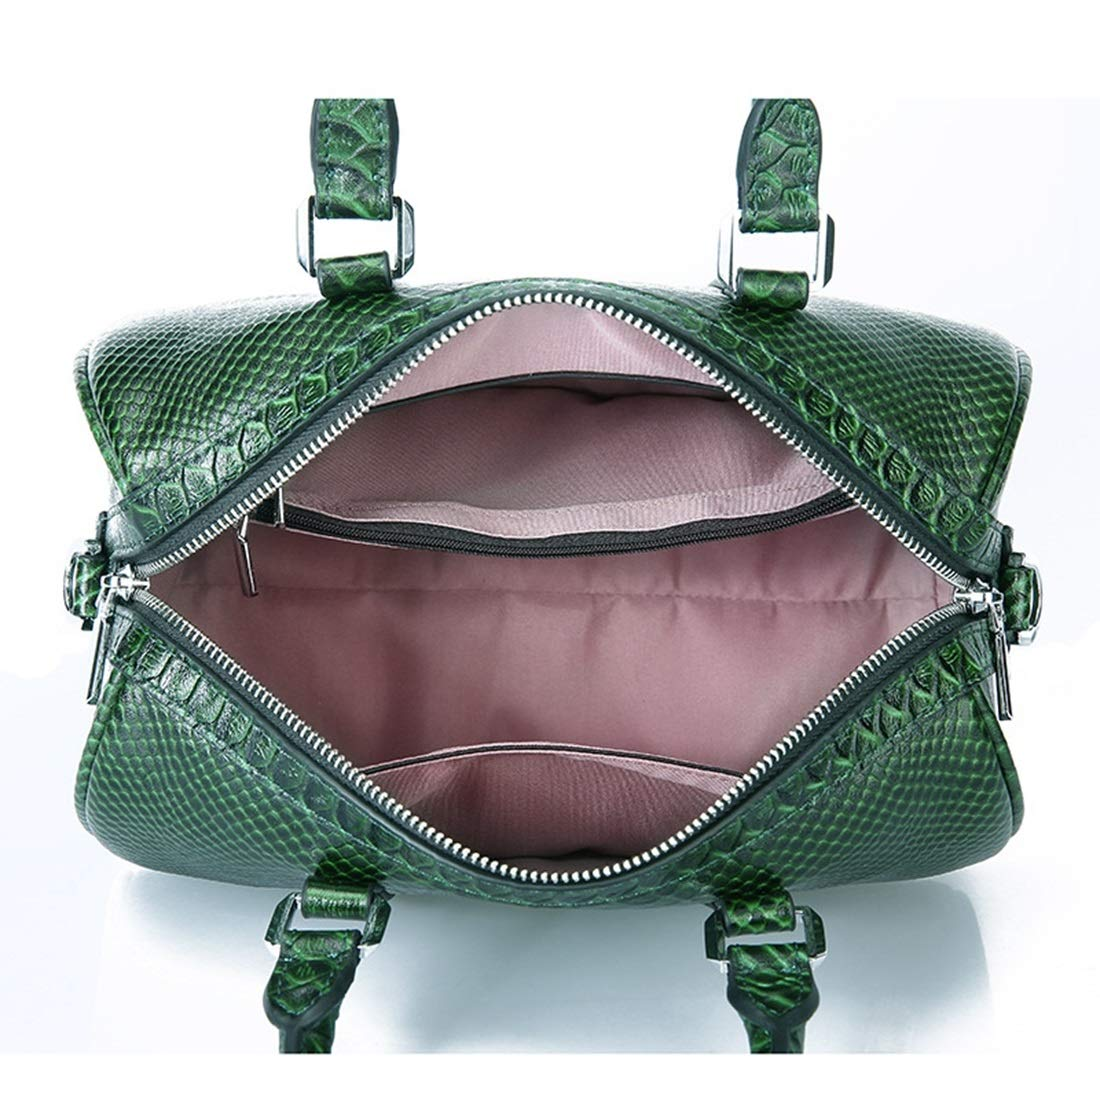 Sopetify Snakeskin Pattern First Layer Leather Bag Shoulder Portable Ladies Bag Stereo Stereotypes Simple and Practical Womens Totes Bags